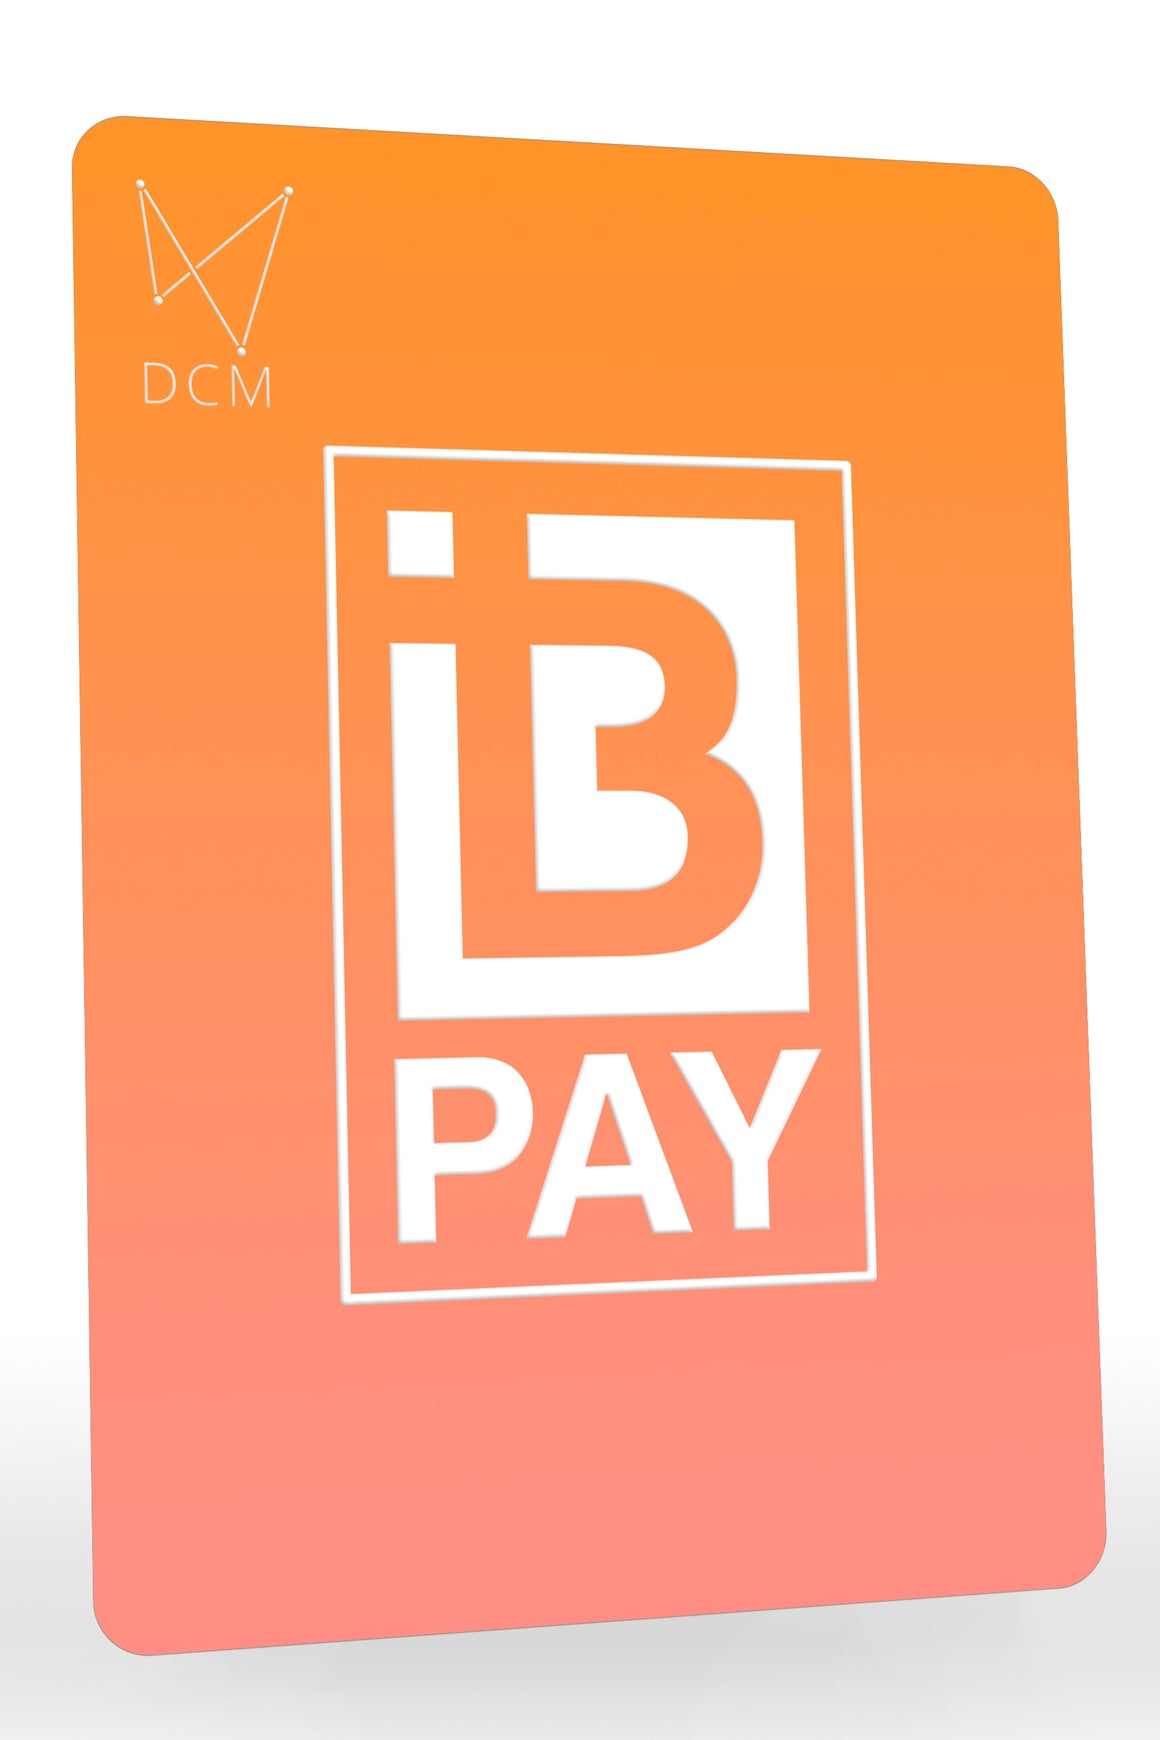 Pay Bills with Cryptocurrency Using BPAY